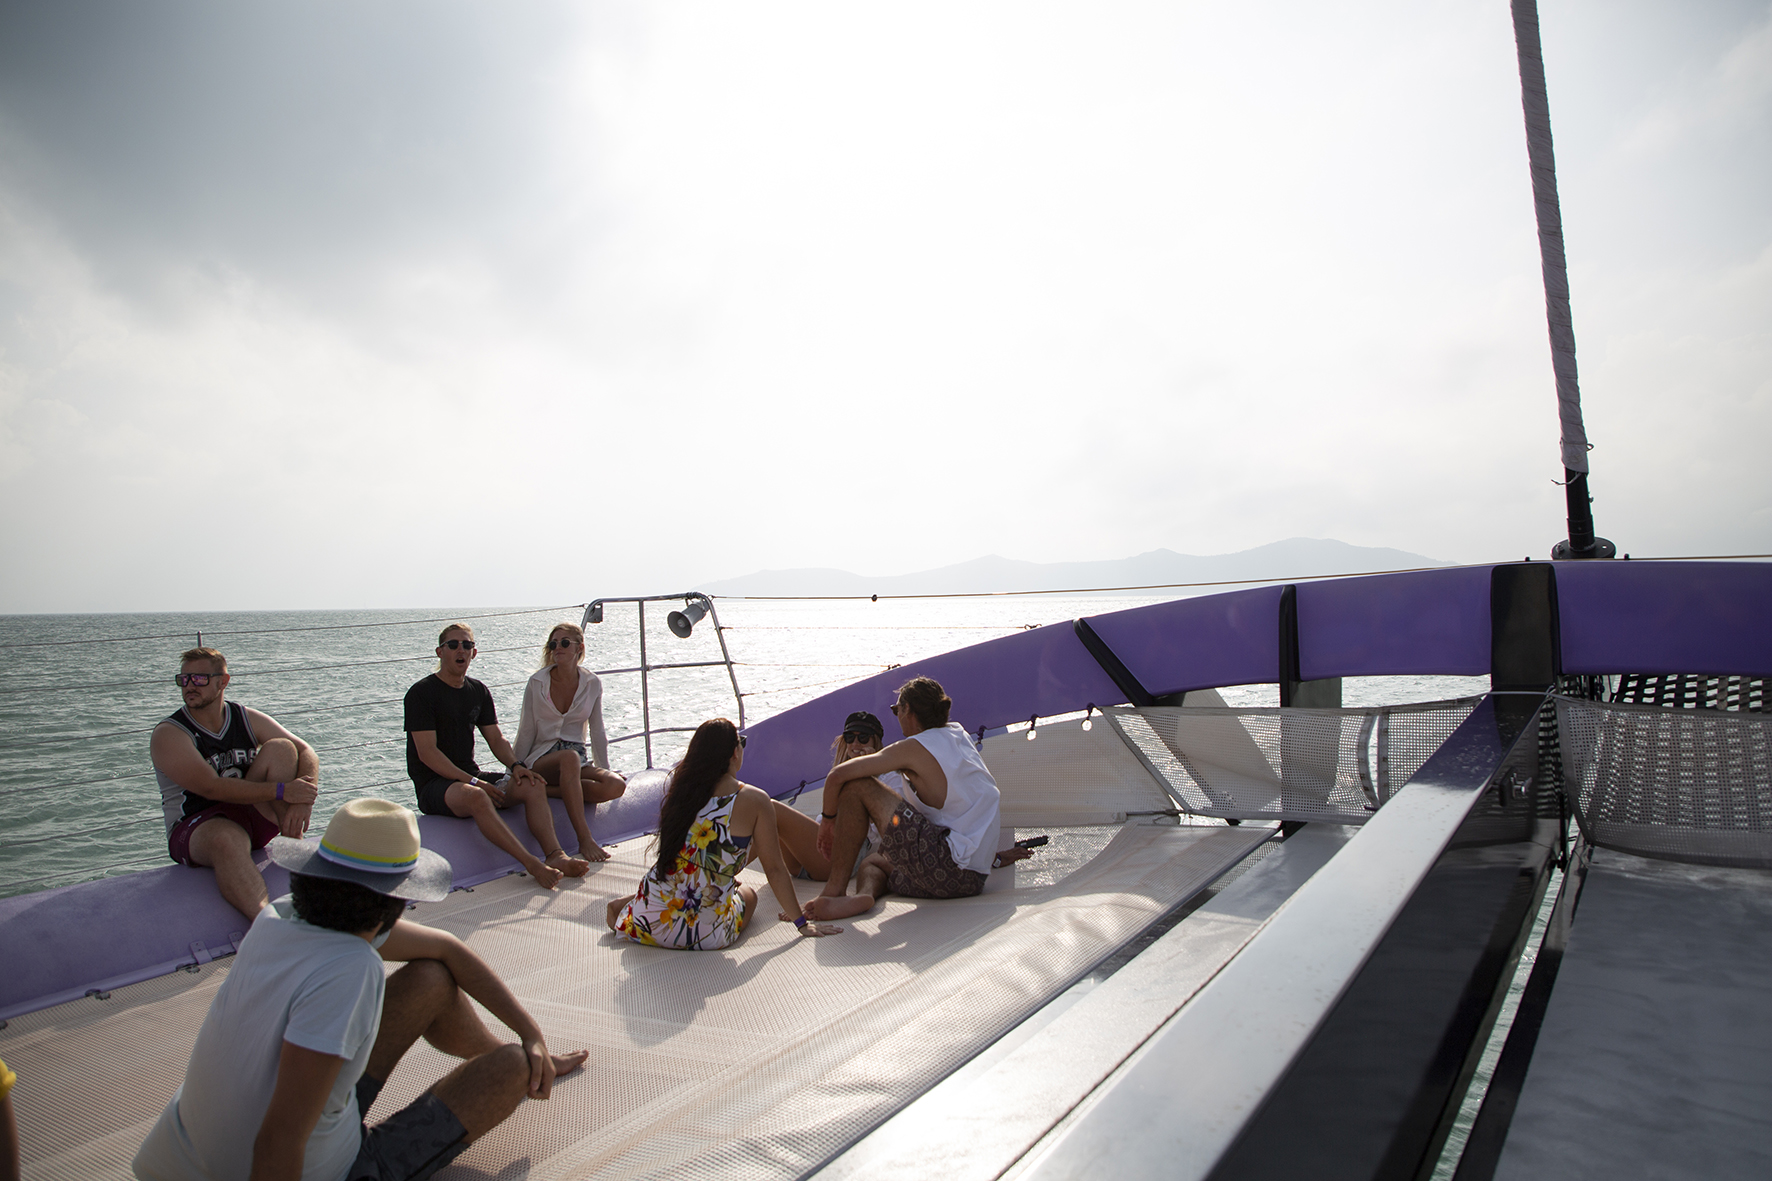 Camira is a world first with her sleek lines, spacious deck areas and breathtaking performance. Camira is one of the world's fastest commercial sailing catamarans, capable of sailing at speeds up to 30 knots.